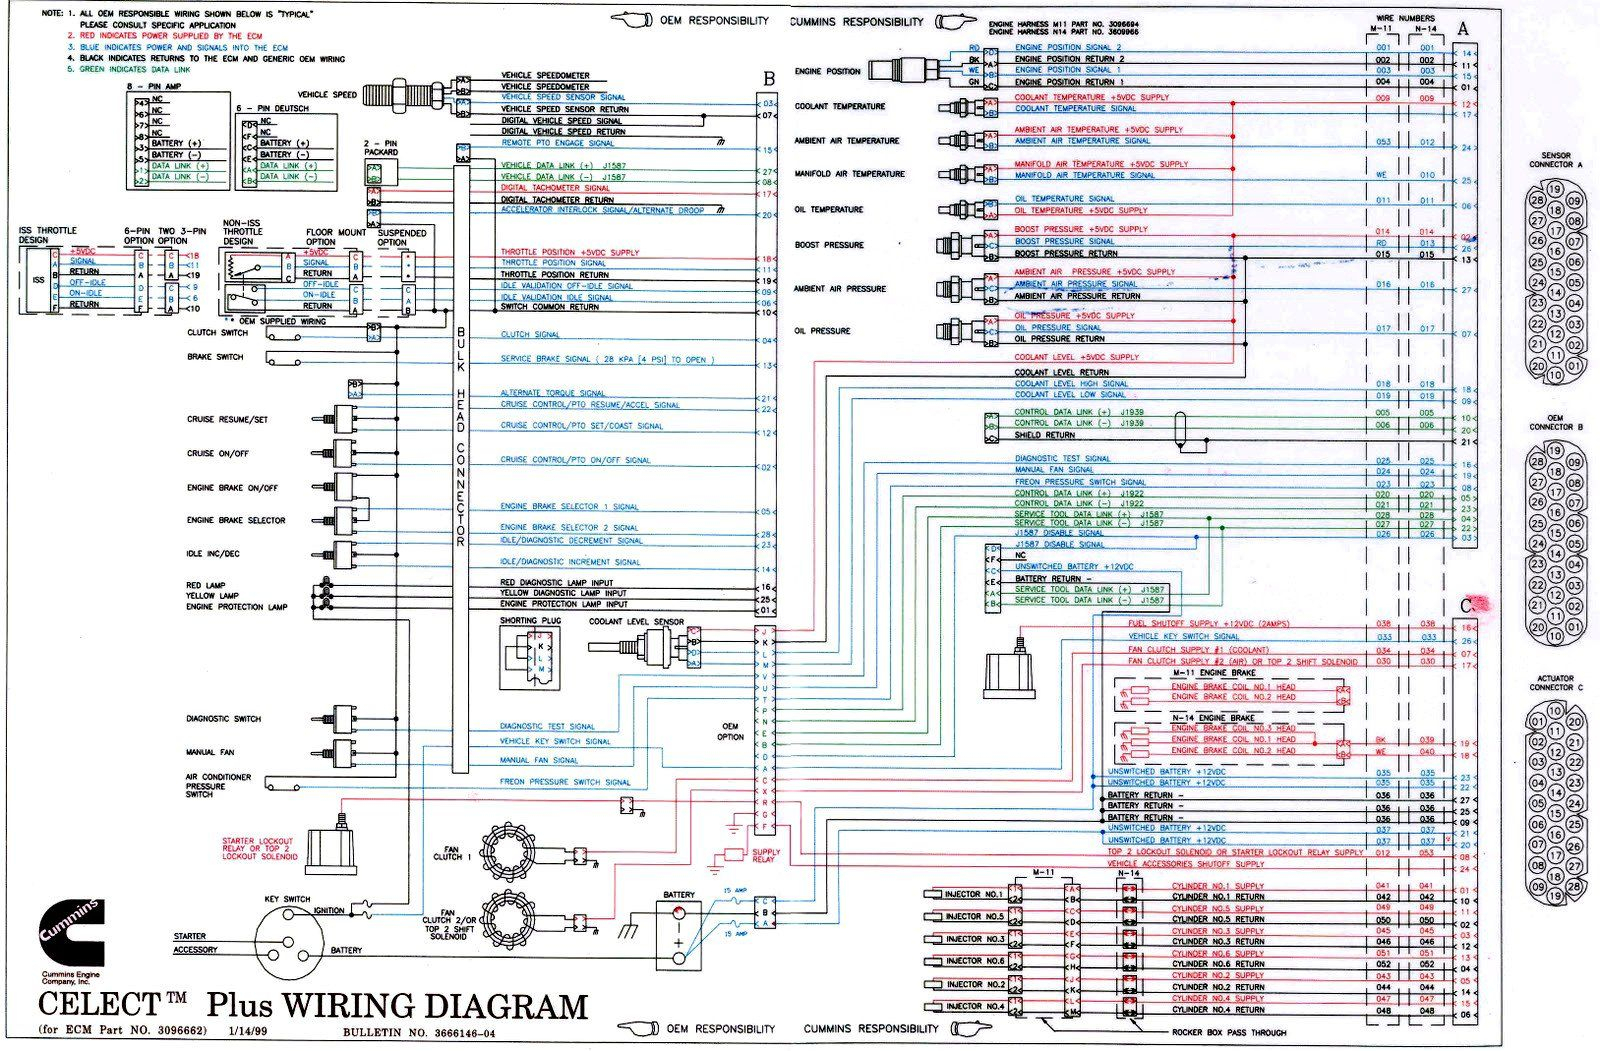 n14 cummins ecm wiring diagram Collection-Cummins N14 Celect Plus Wiring Diagram to 100 Ideas Diagrams isx 40 N14 Celect Wiring 2-t